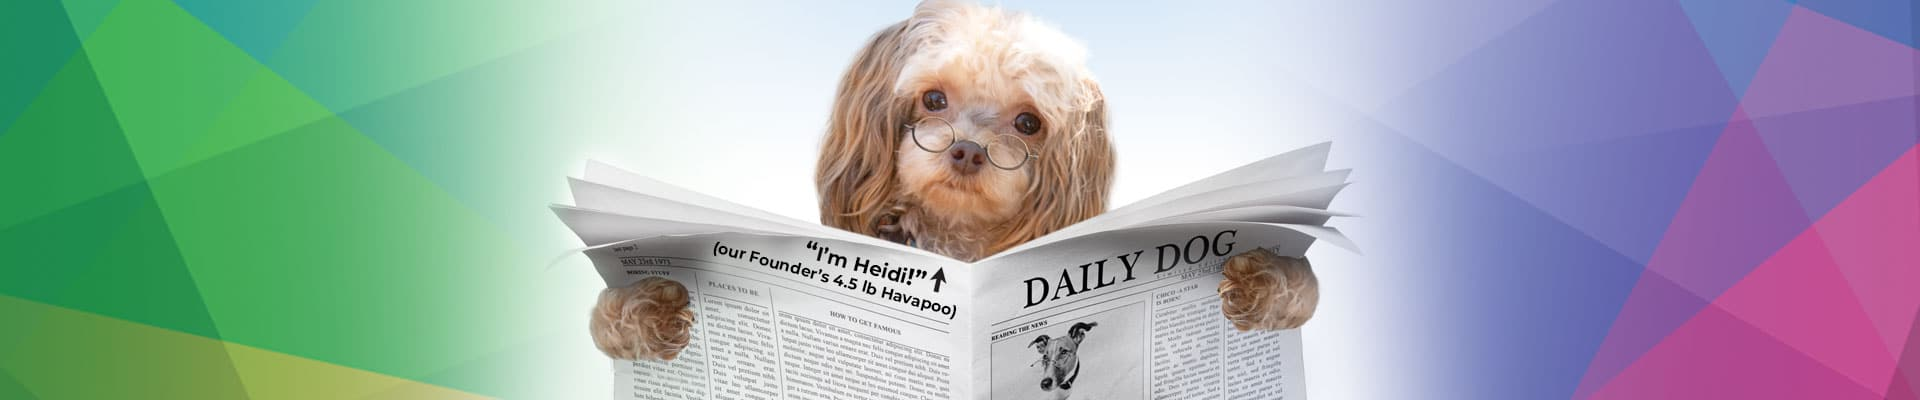 Kaleidoscope News Header with our founder's dog, Heidi, holding newspaper